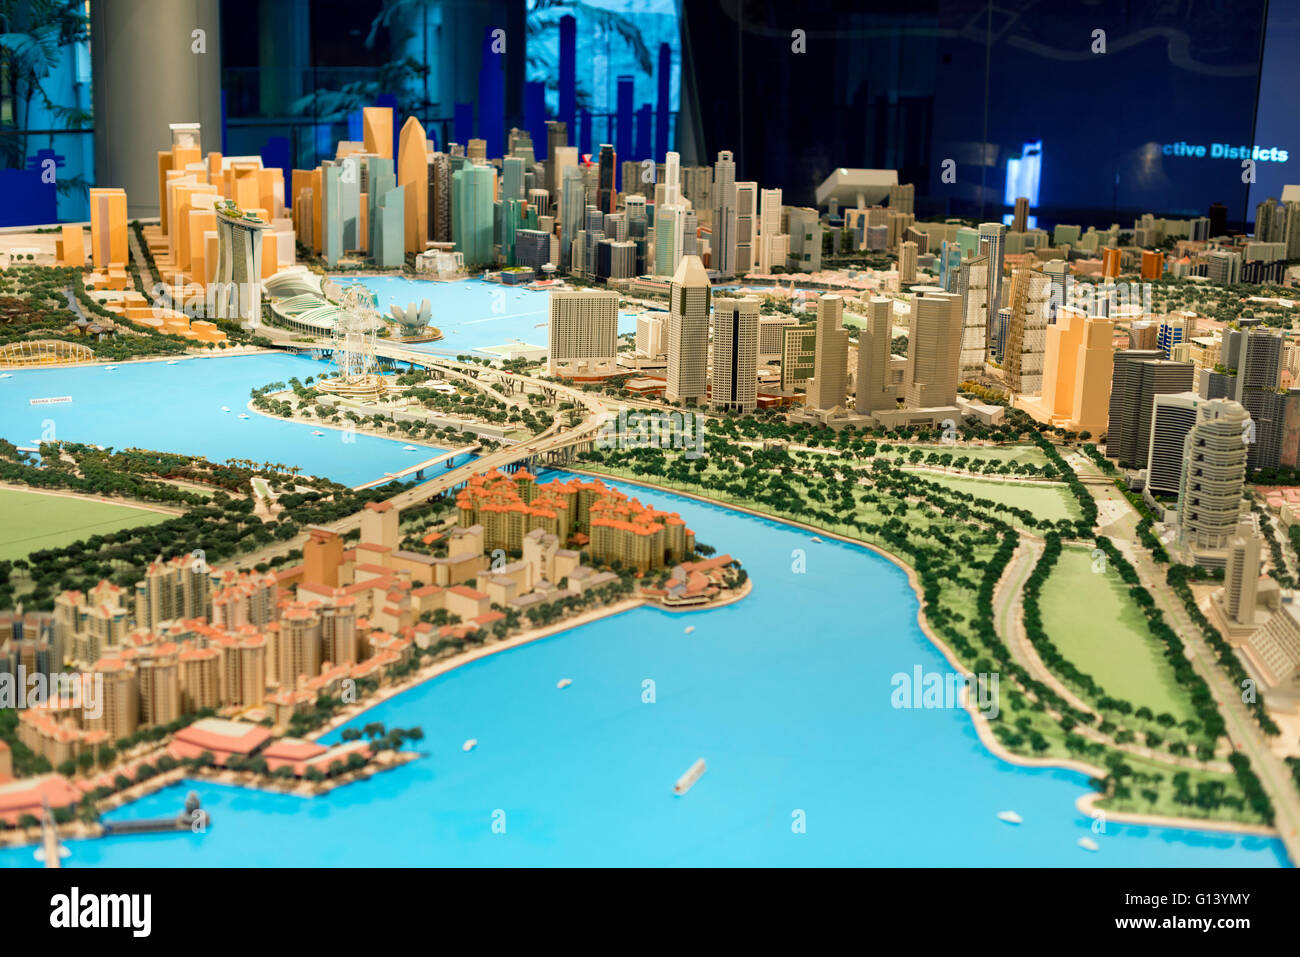 South East Asia, Singapore, city planning building, scale model of singapore - Stock Image